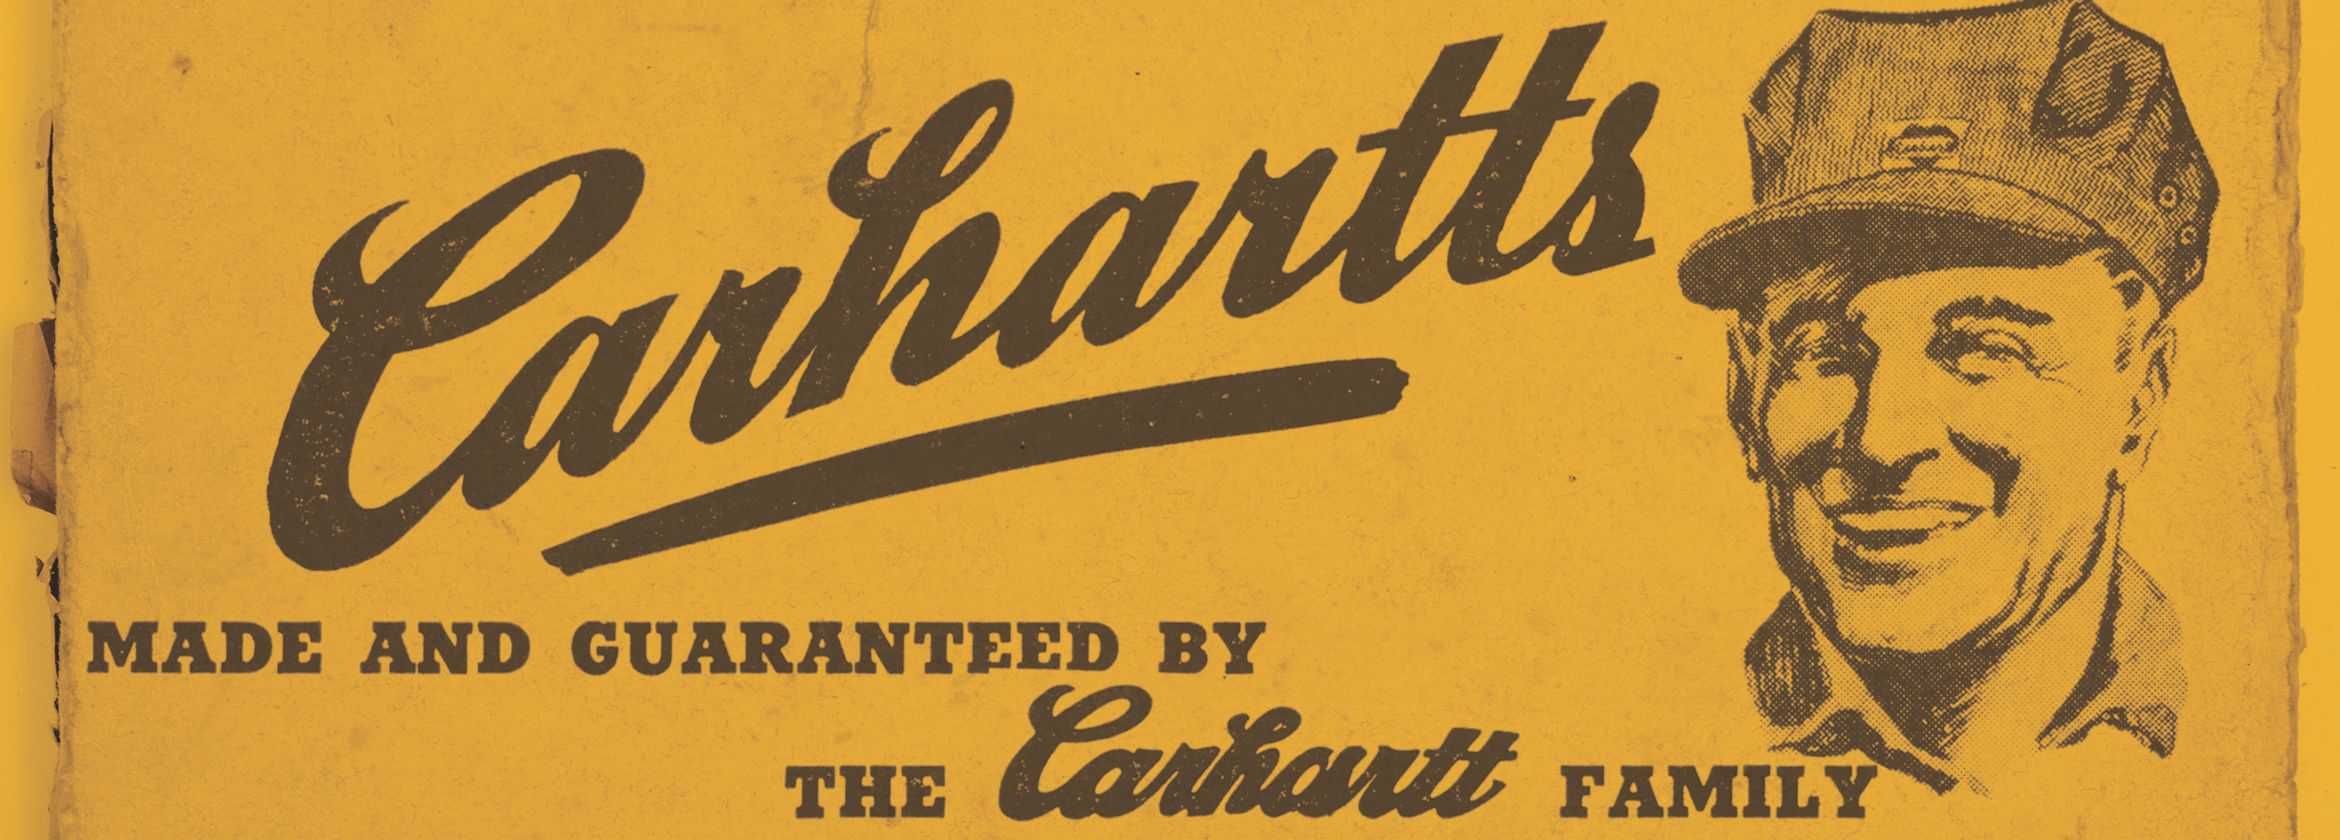 Why You Need A Pair Of Carhartt Work Boots